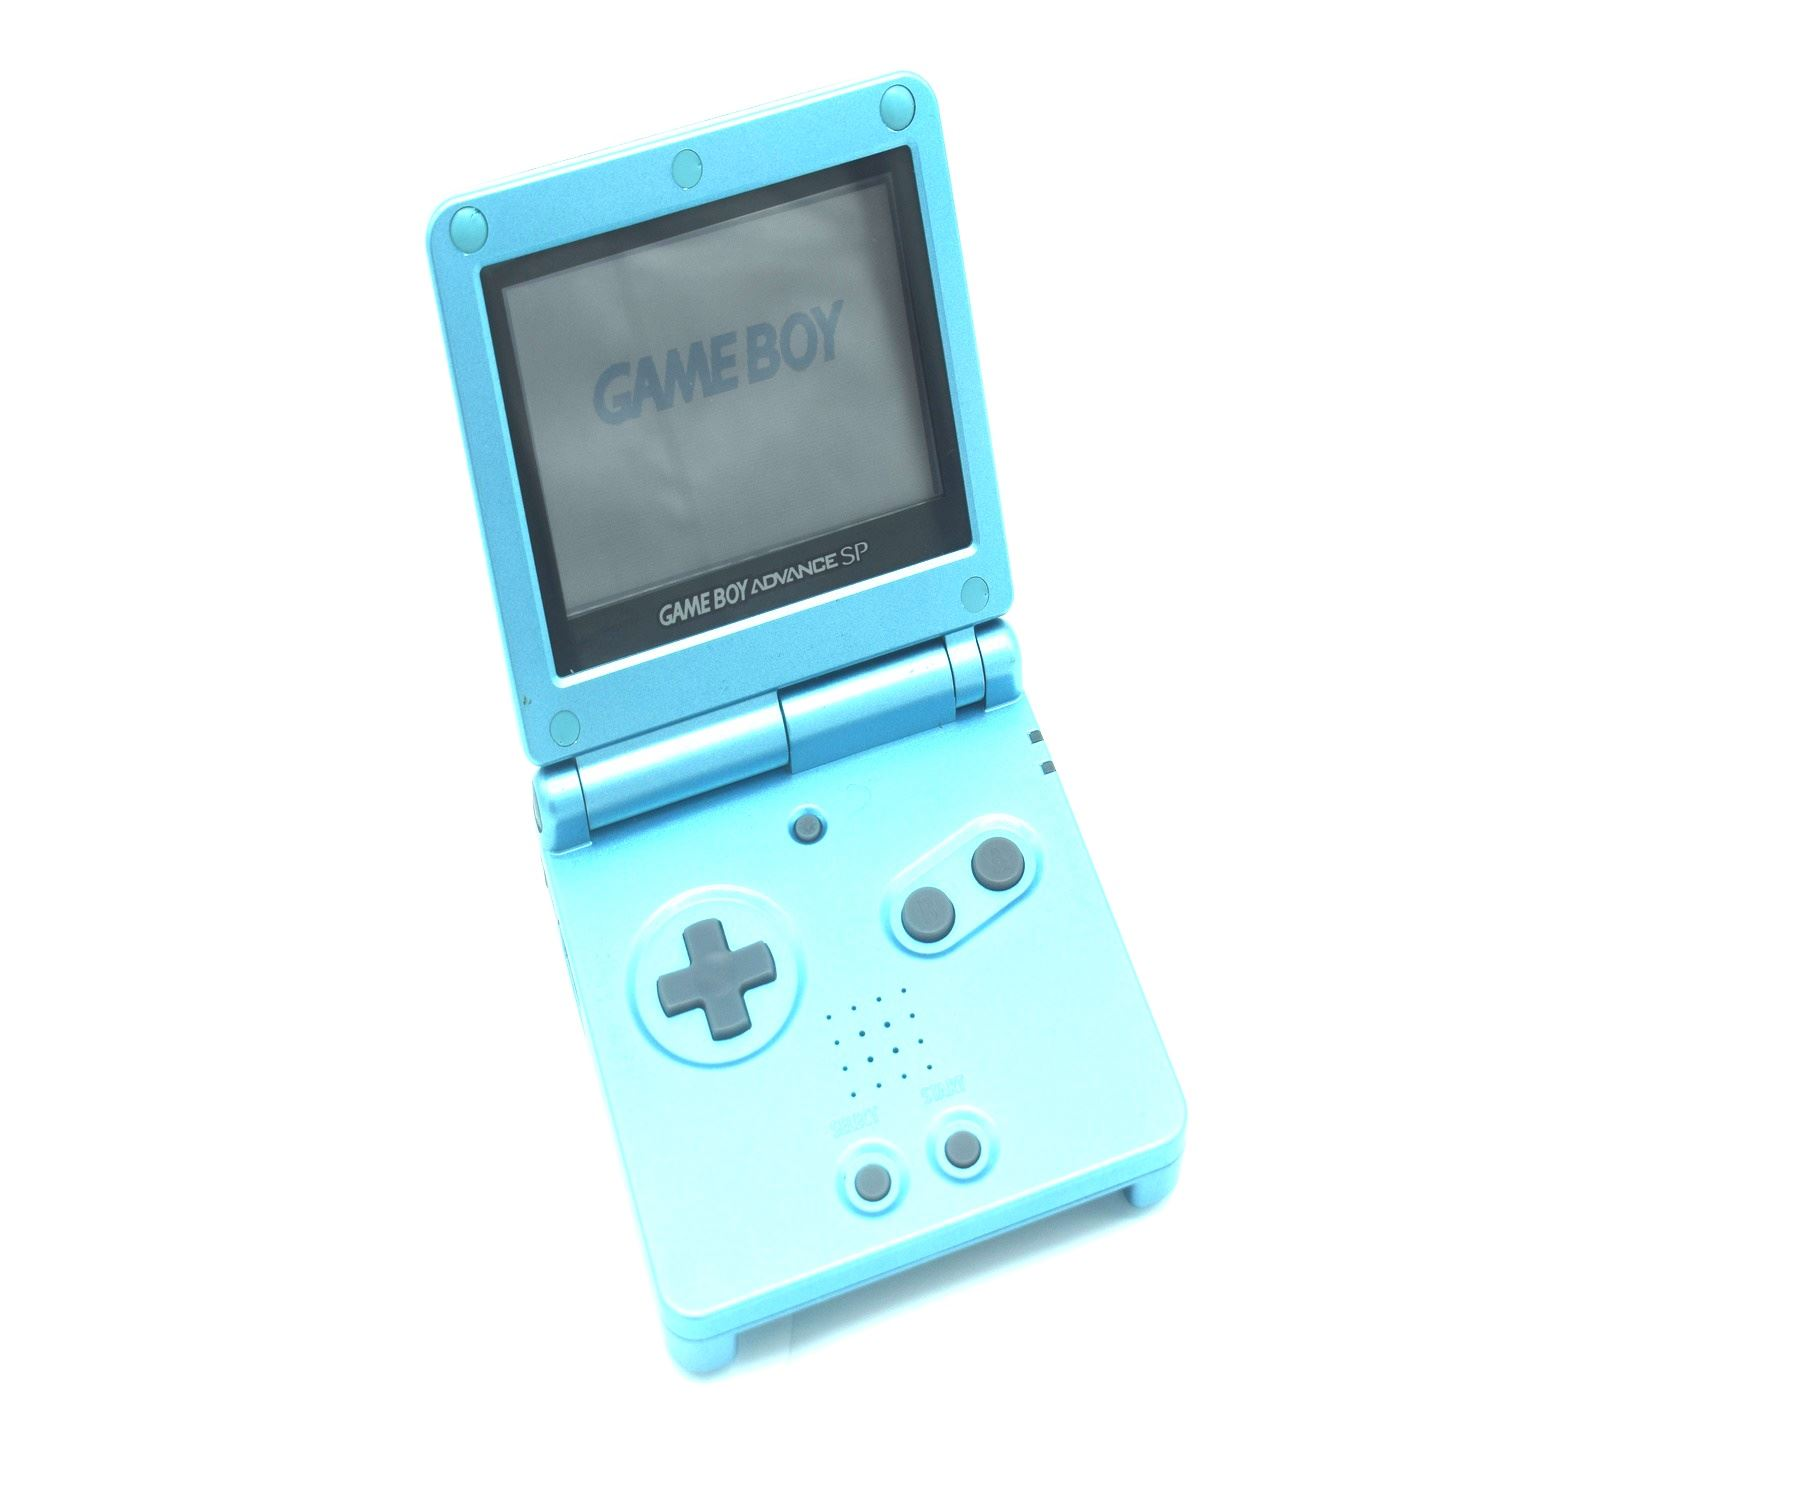 Nintendo-Gameboy-SP-Game-Boy-Advance-GBA-Console-System-6-Colour-Options thumbnail 28